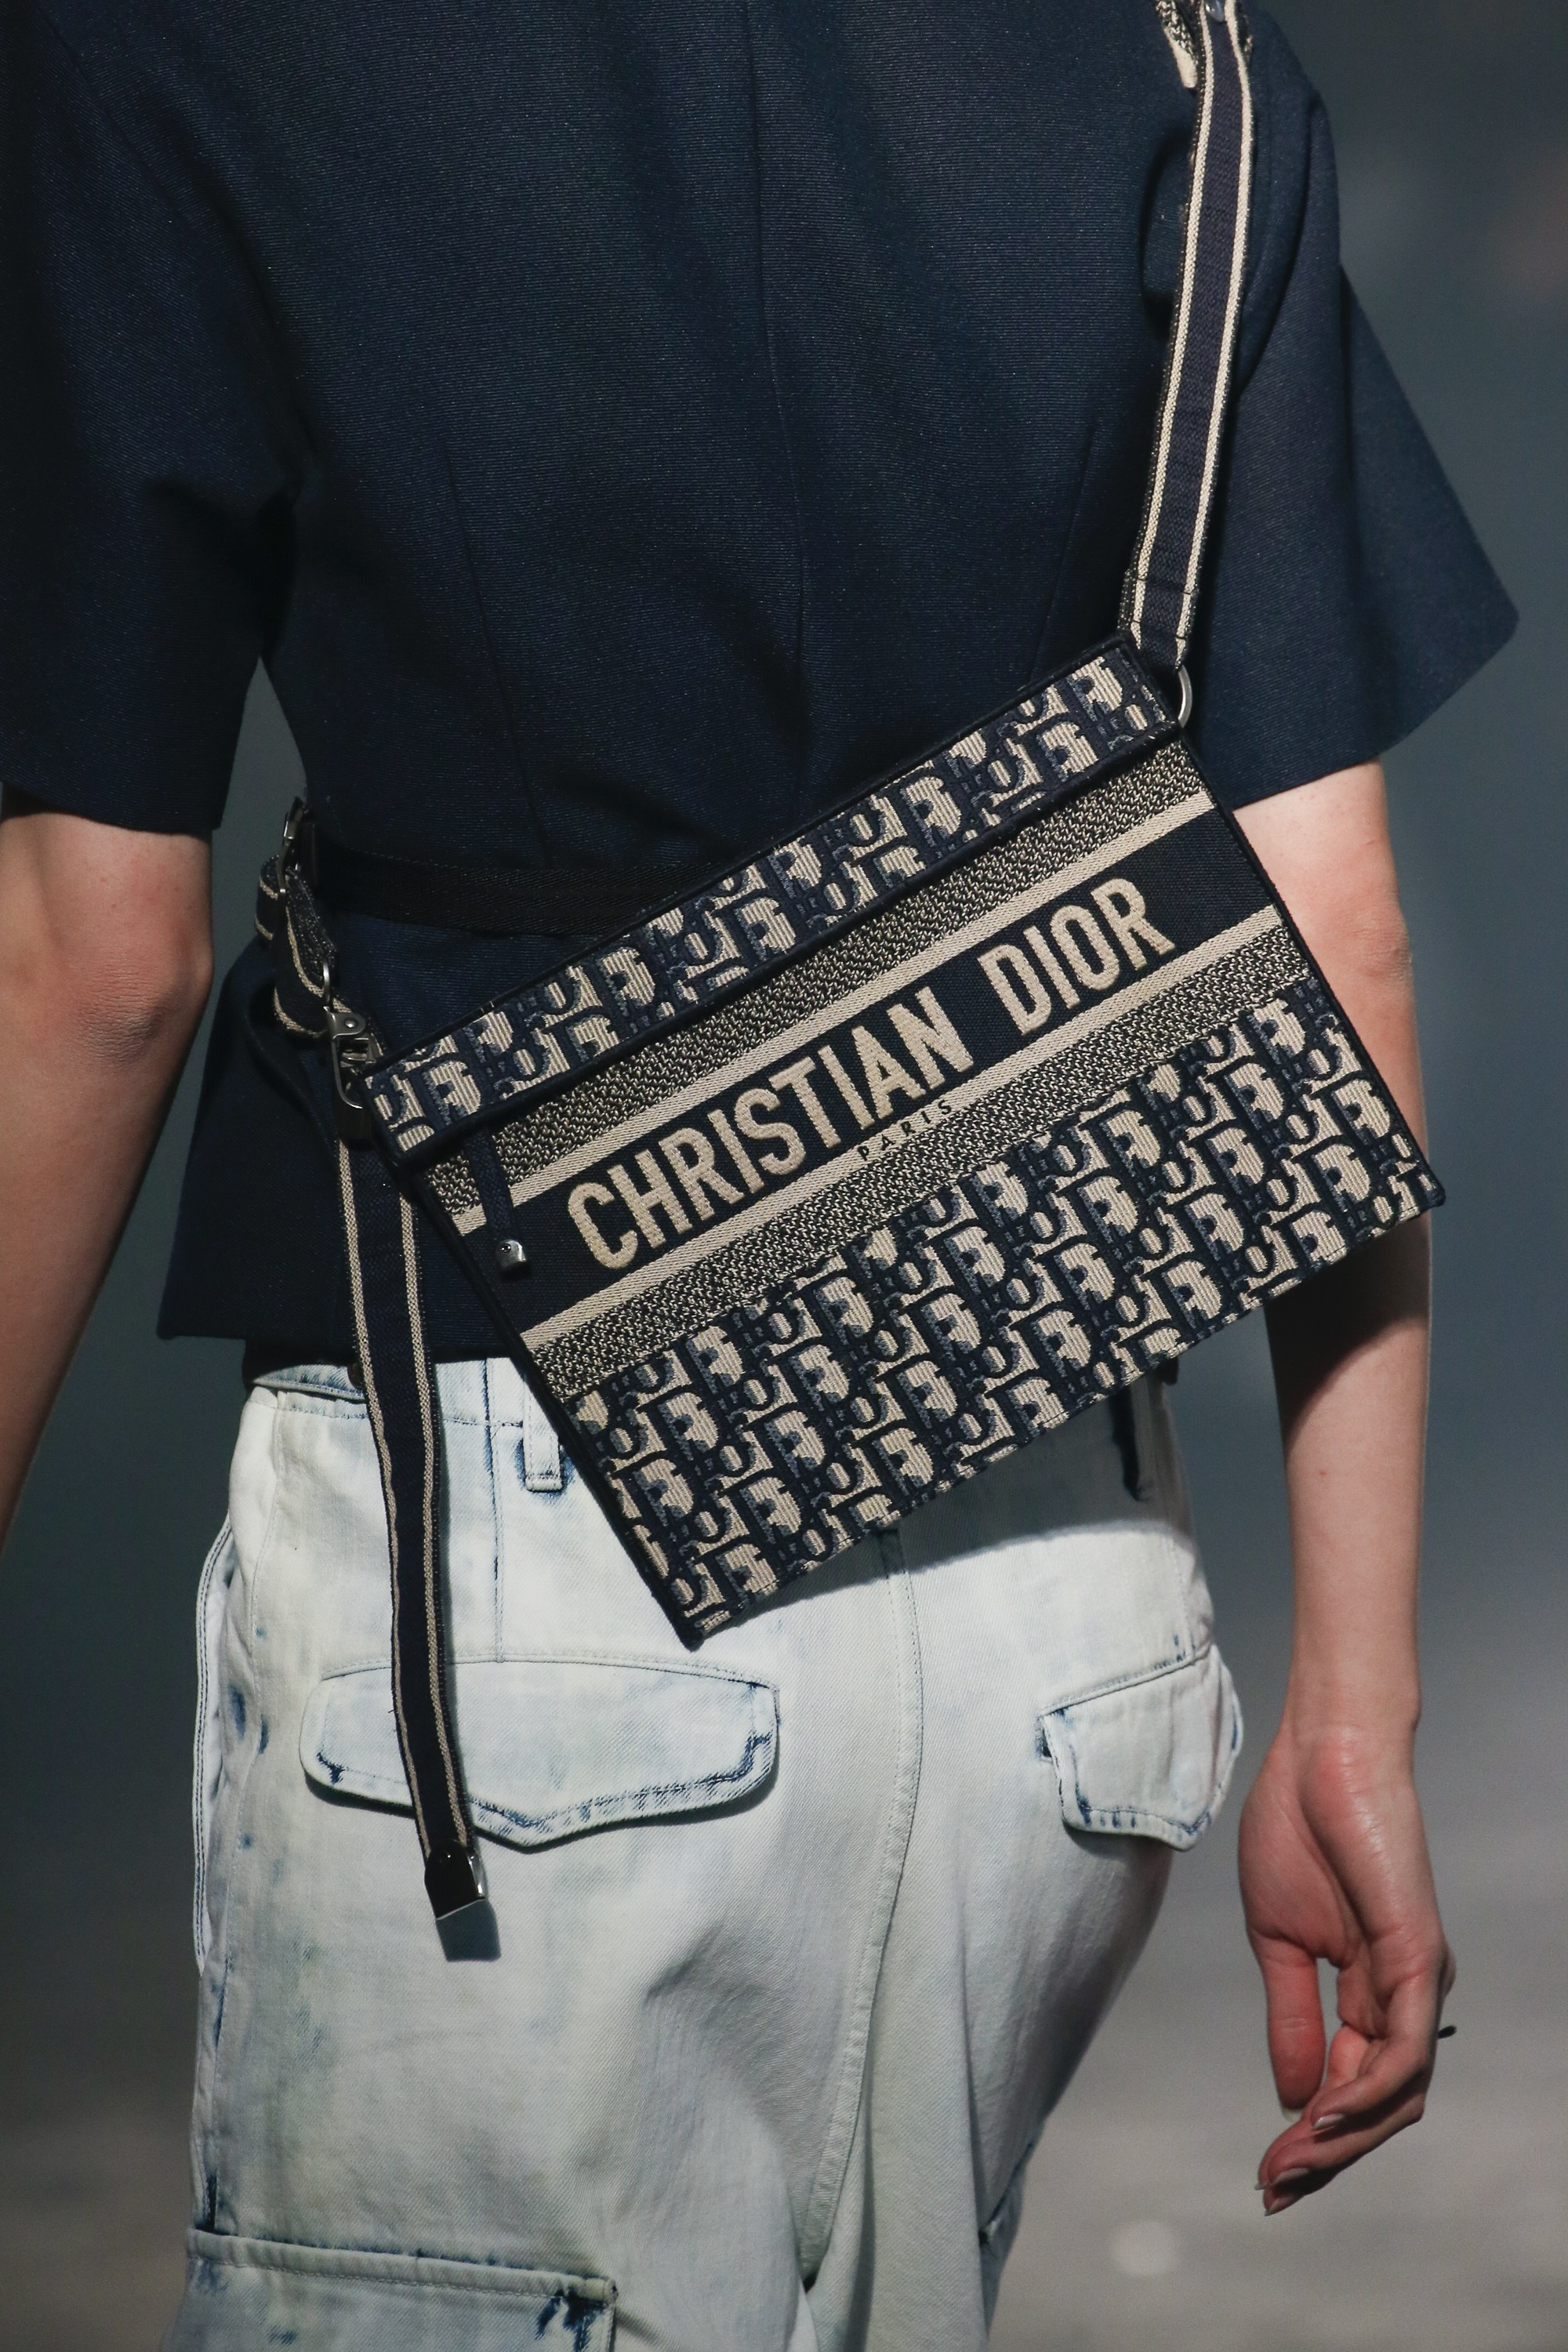 927c8ec6ffd Dior Spring Summer 2019 Runway Bag Collection Spotted Fashion